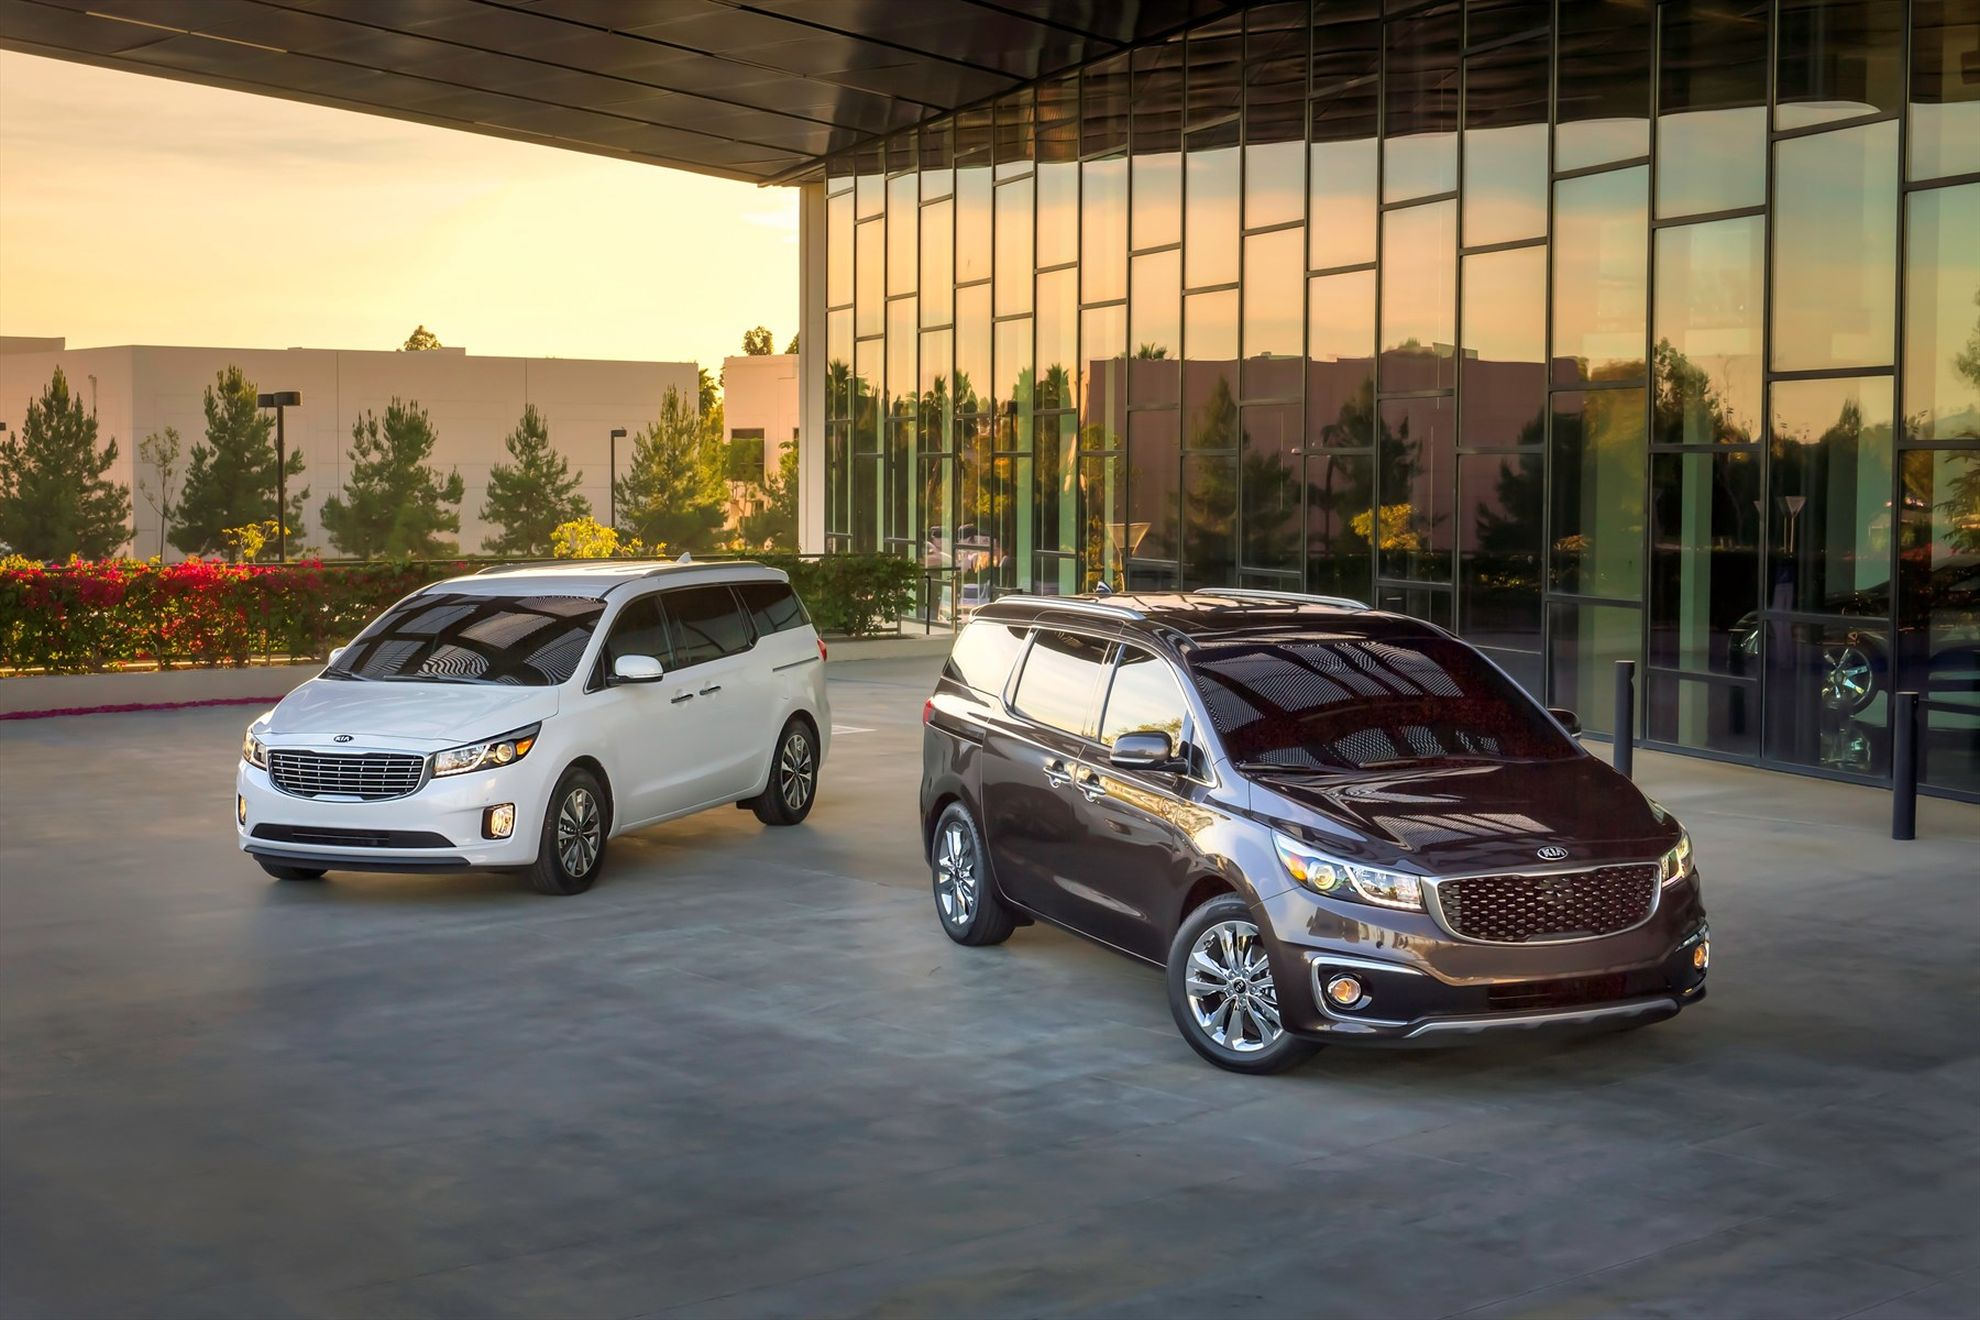 2015-KIA-Sedona-receives-JD-Power-APEAL-award